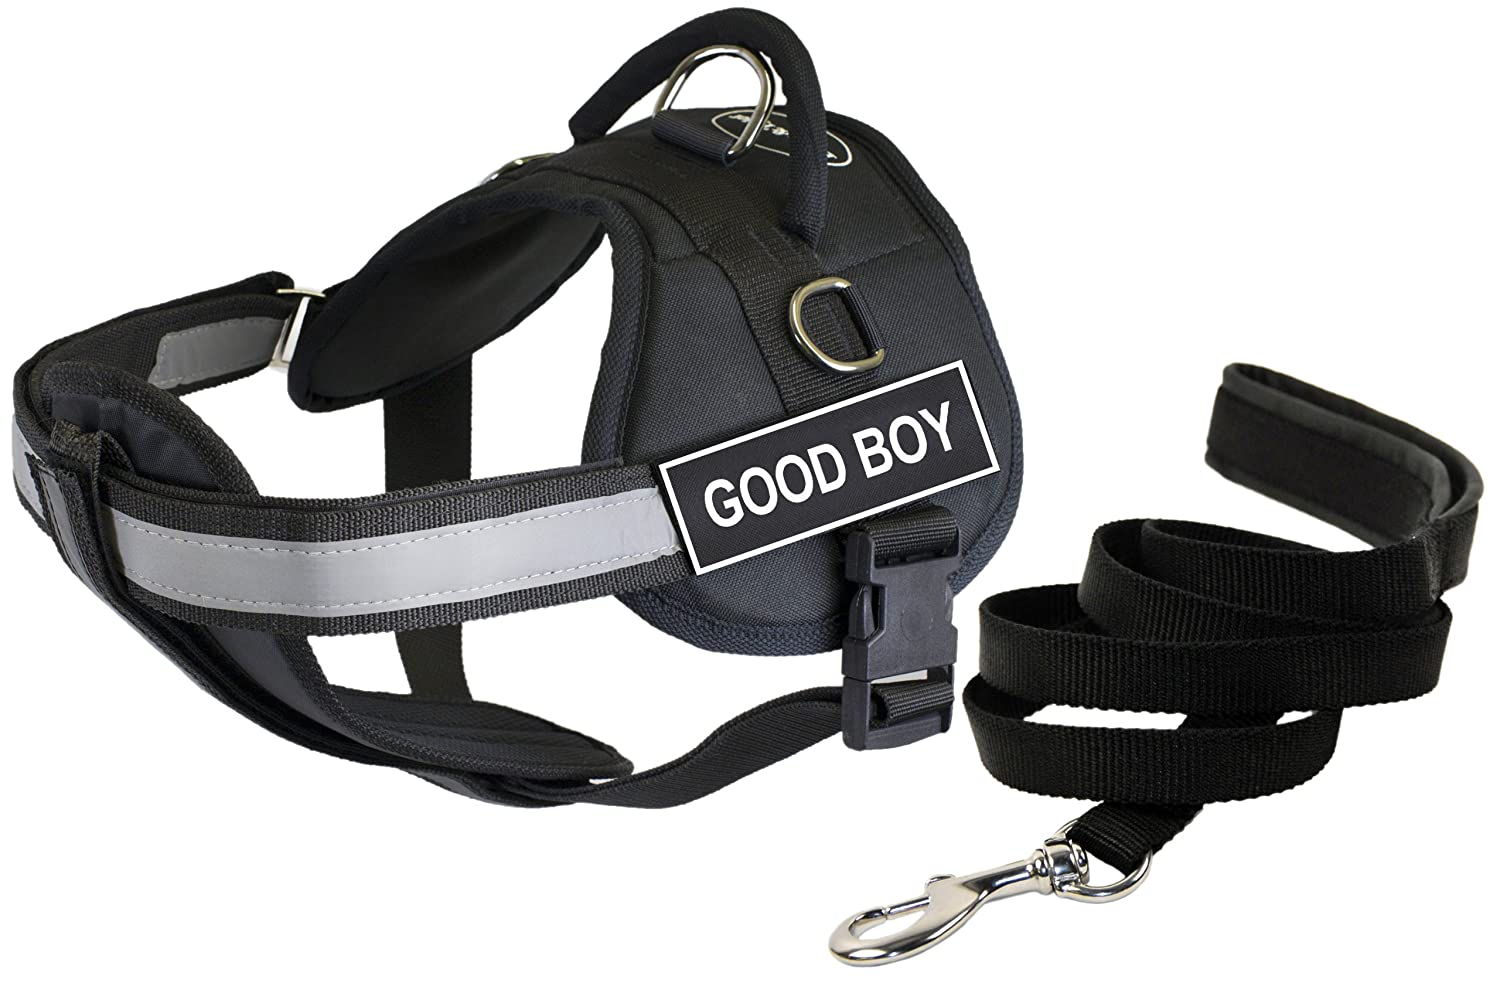 Dean & Tyler's DT Works Good BOY  Harness with Chest Padding, X-Small, and 6 ft Padded Puppy Leash.